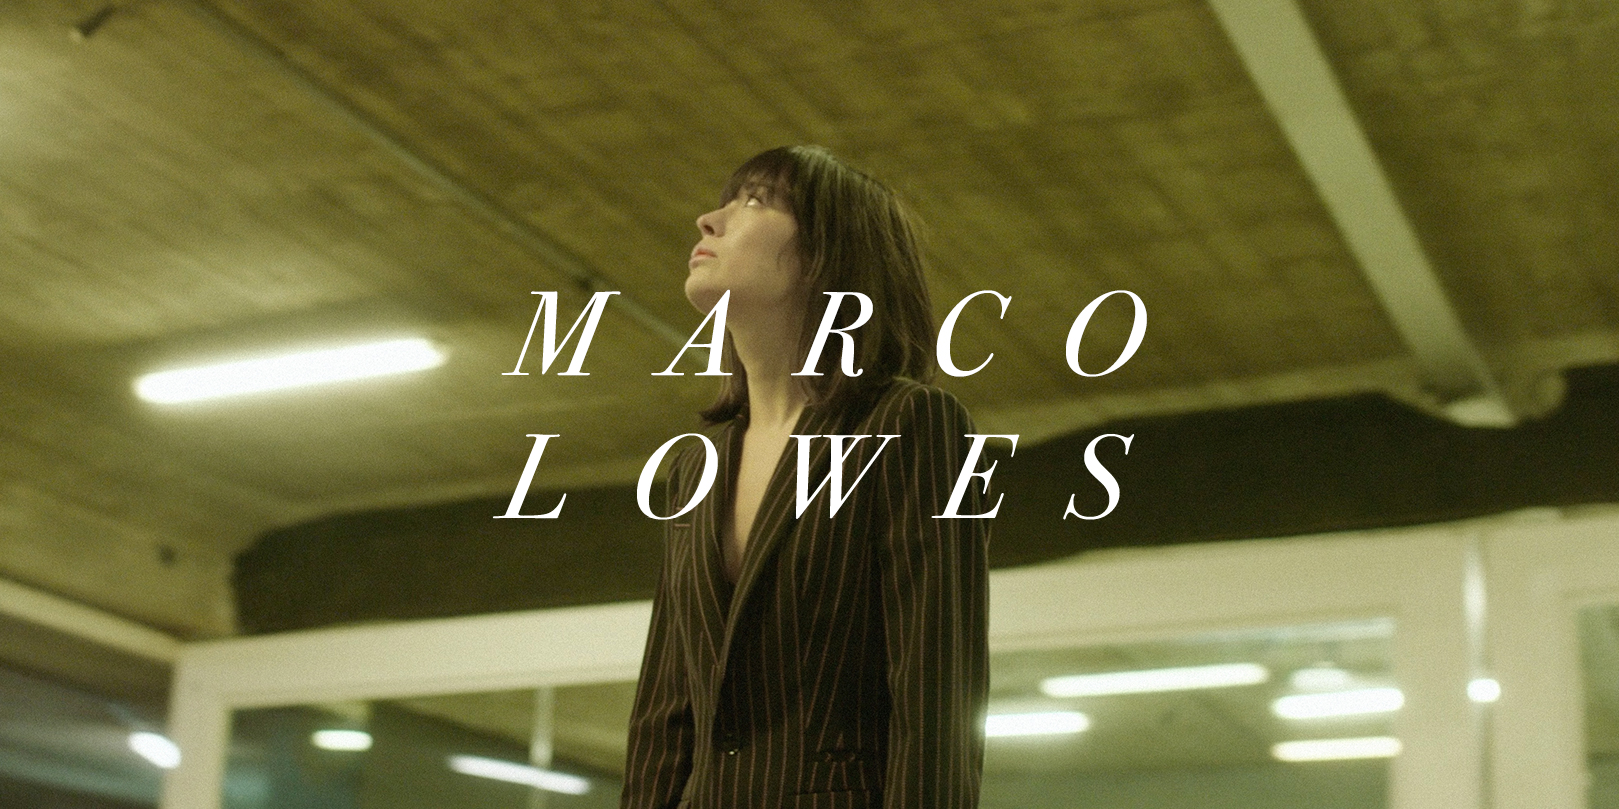 MATCH_CAROUSEL-MarcoLowes-01.jpg